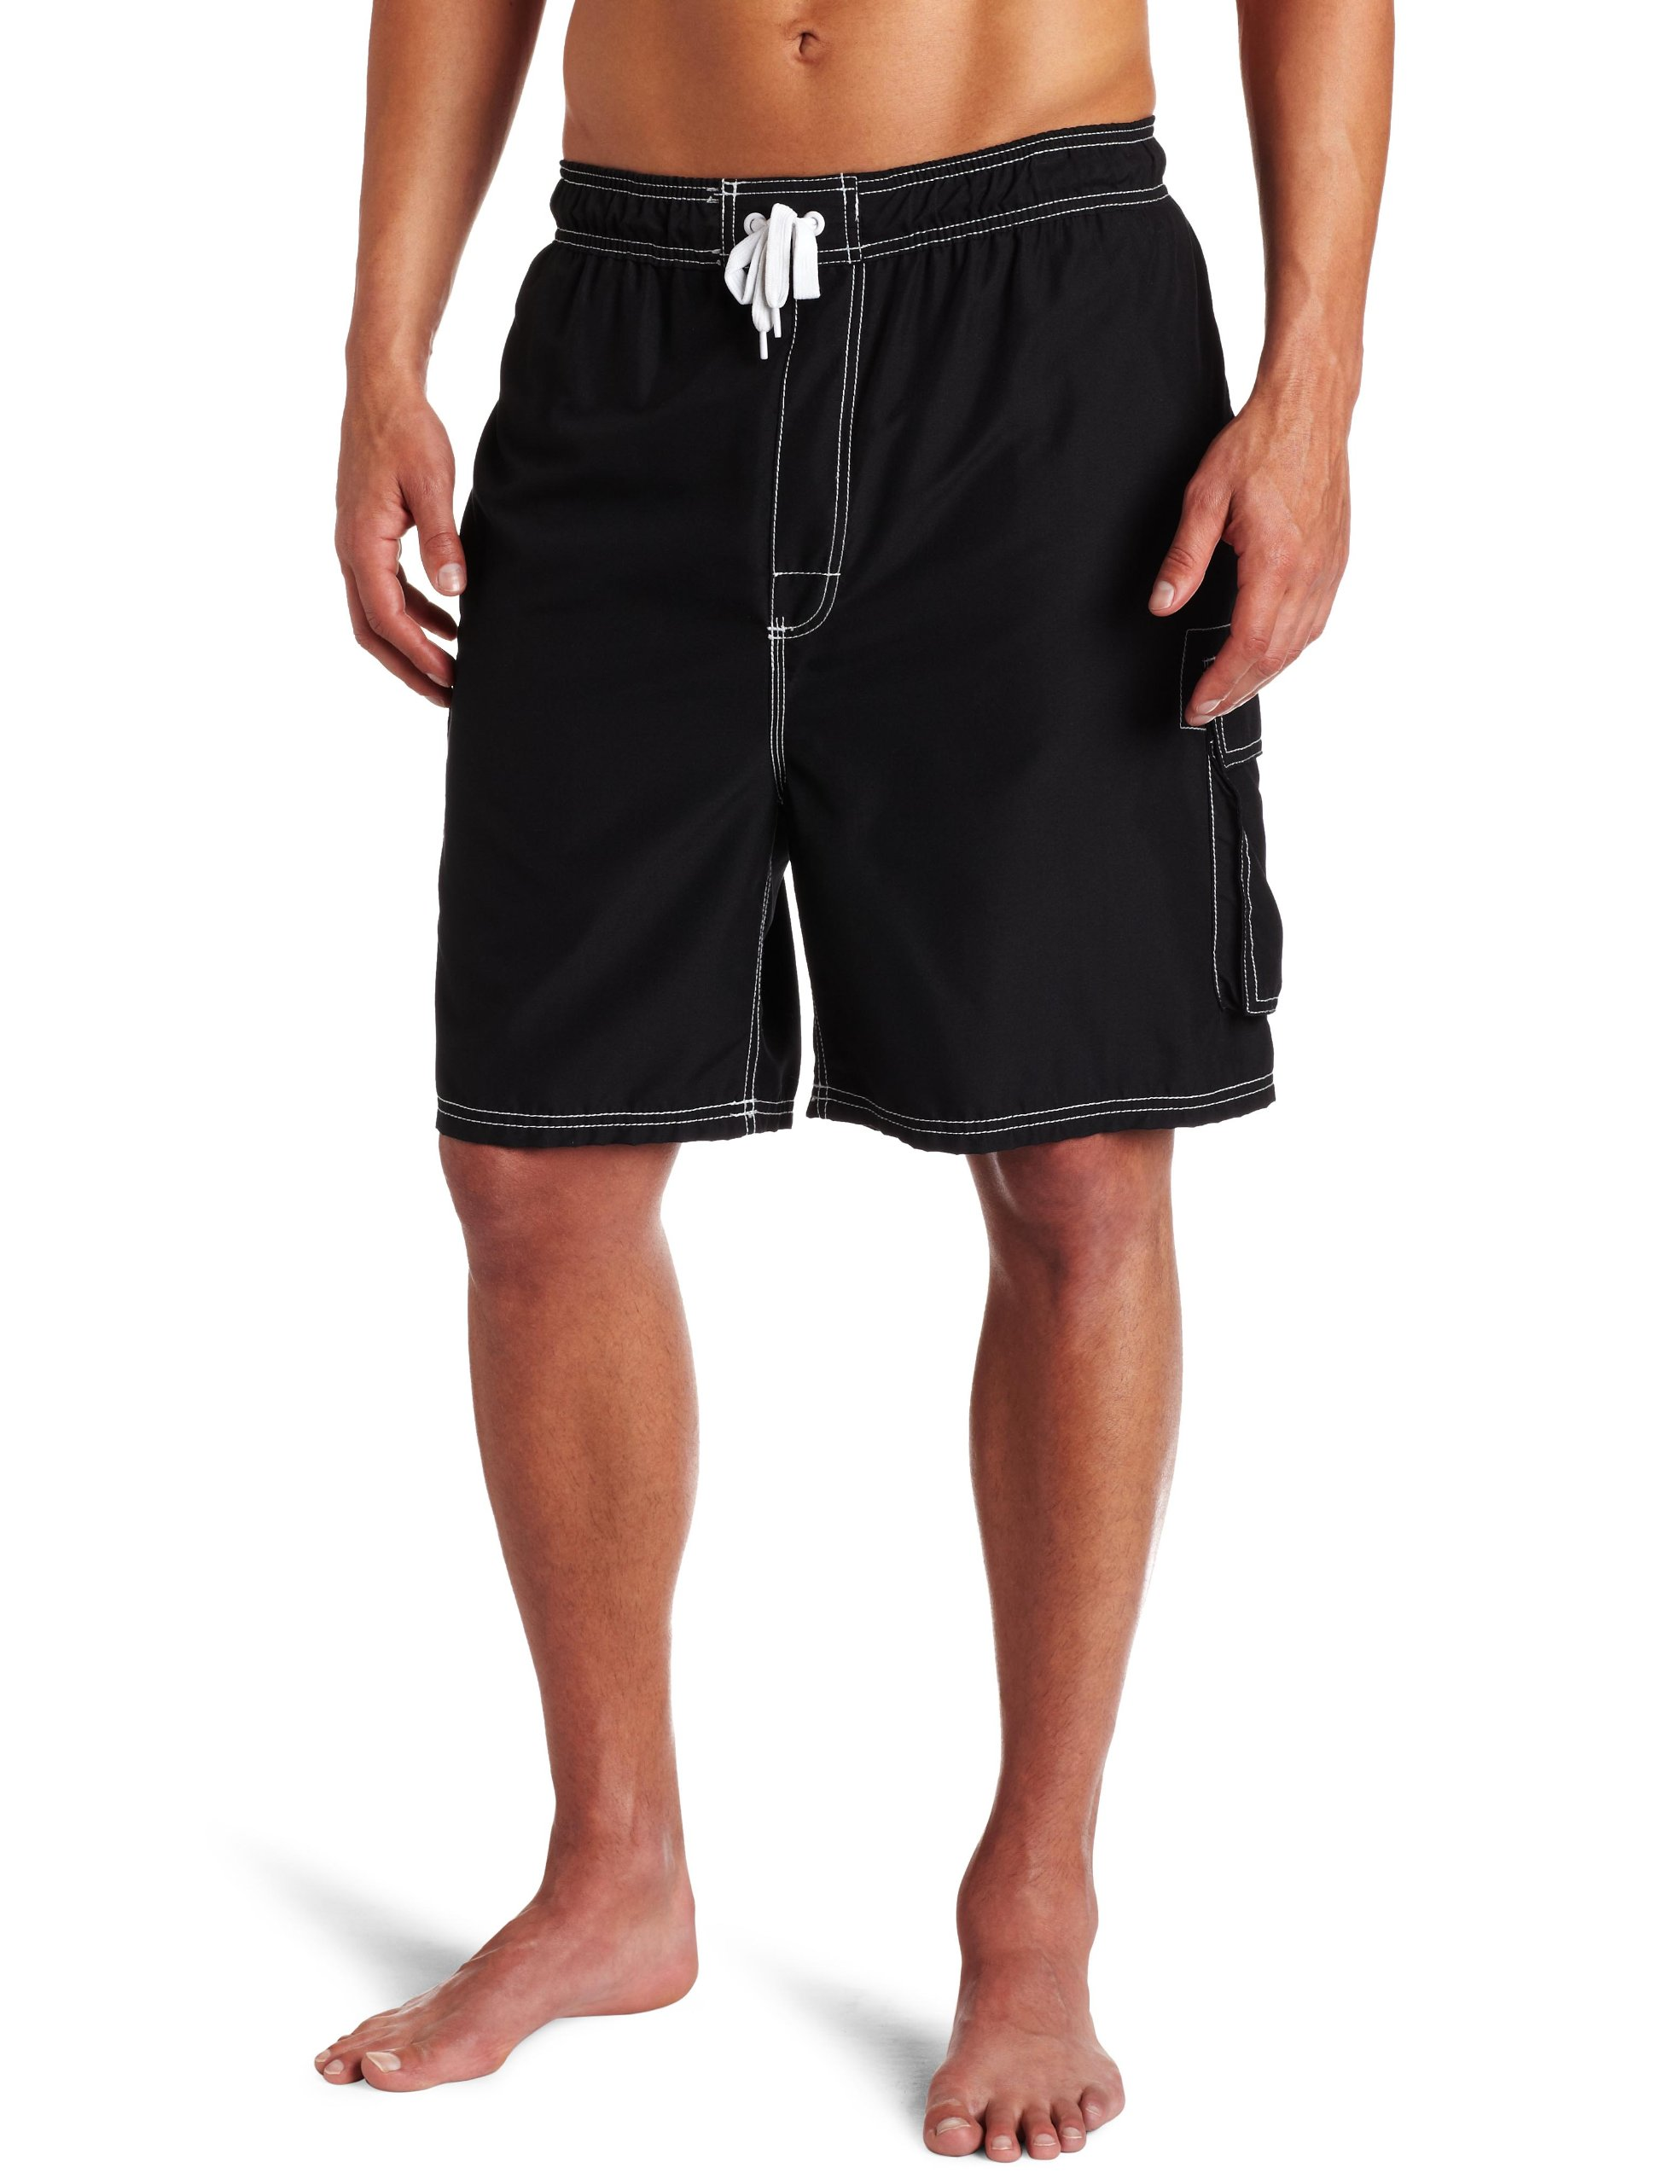 Kanu Surf Mens Barracuda Extended Size Trunk, Black, 3X by Kanu Surf